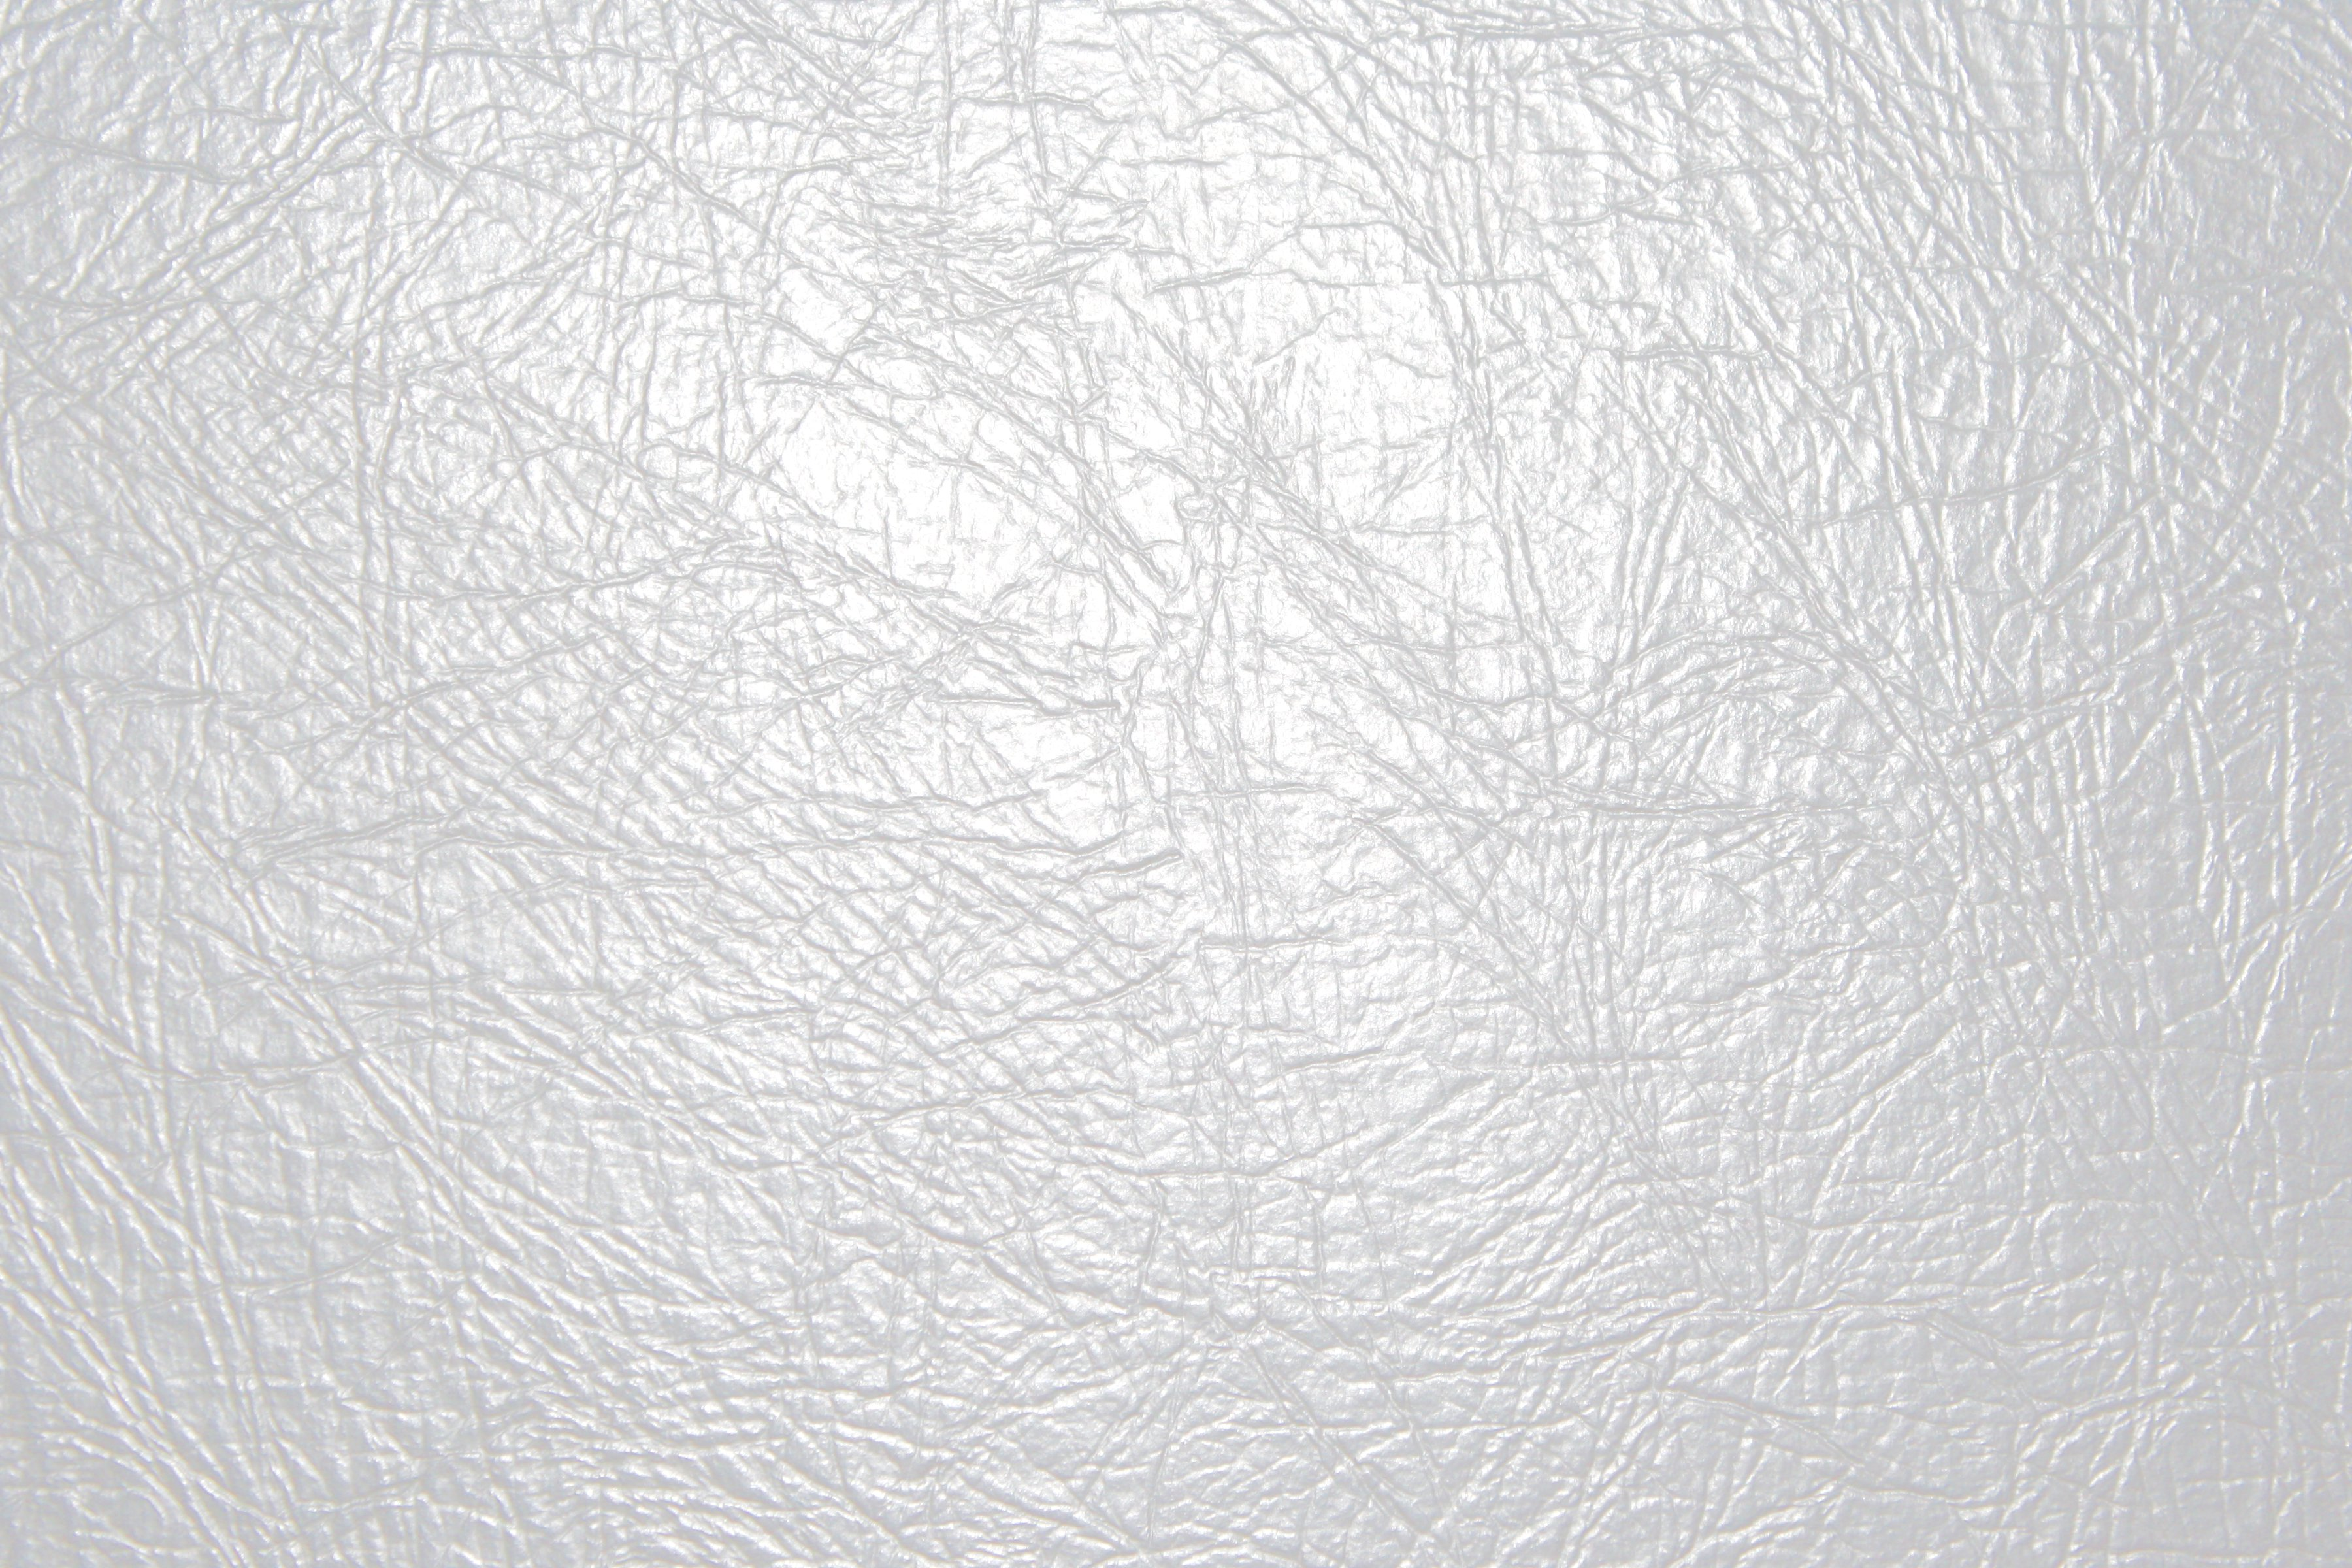 White leather texture close up picture free photograph for Free white texture